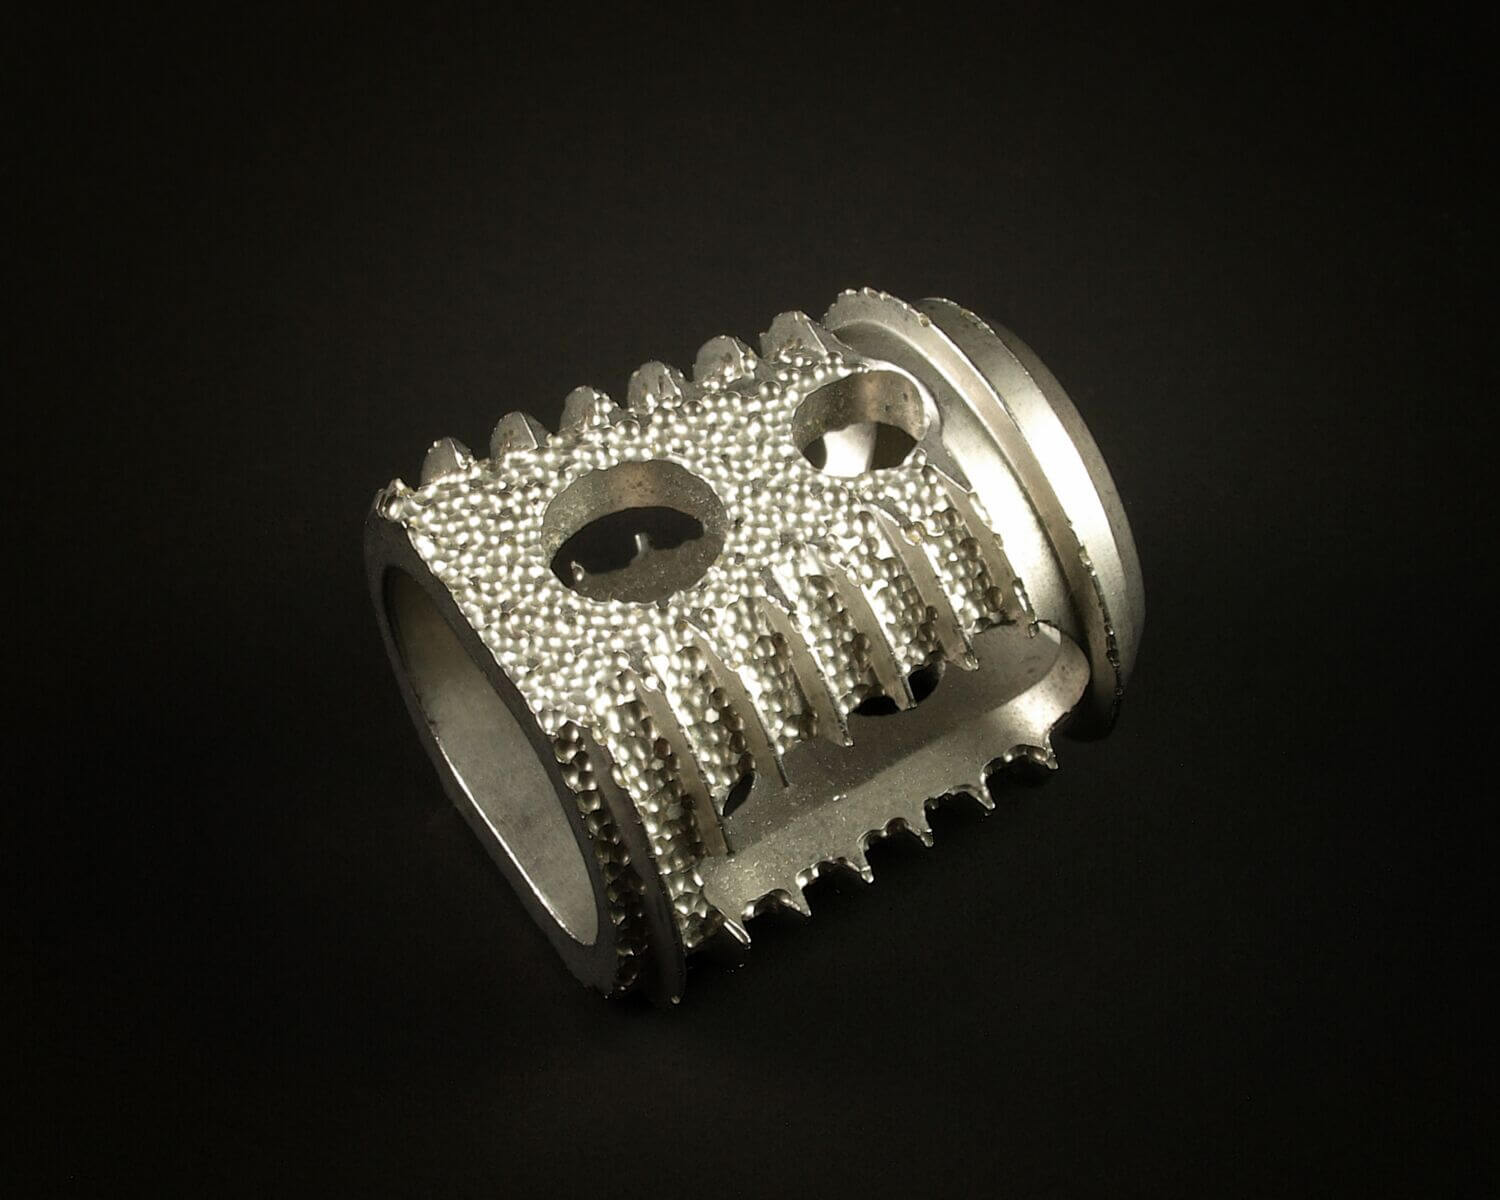 Etched Spinal Implants - Spinal Implant Components